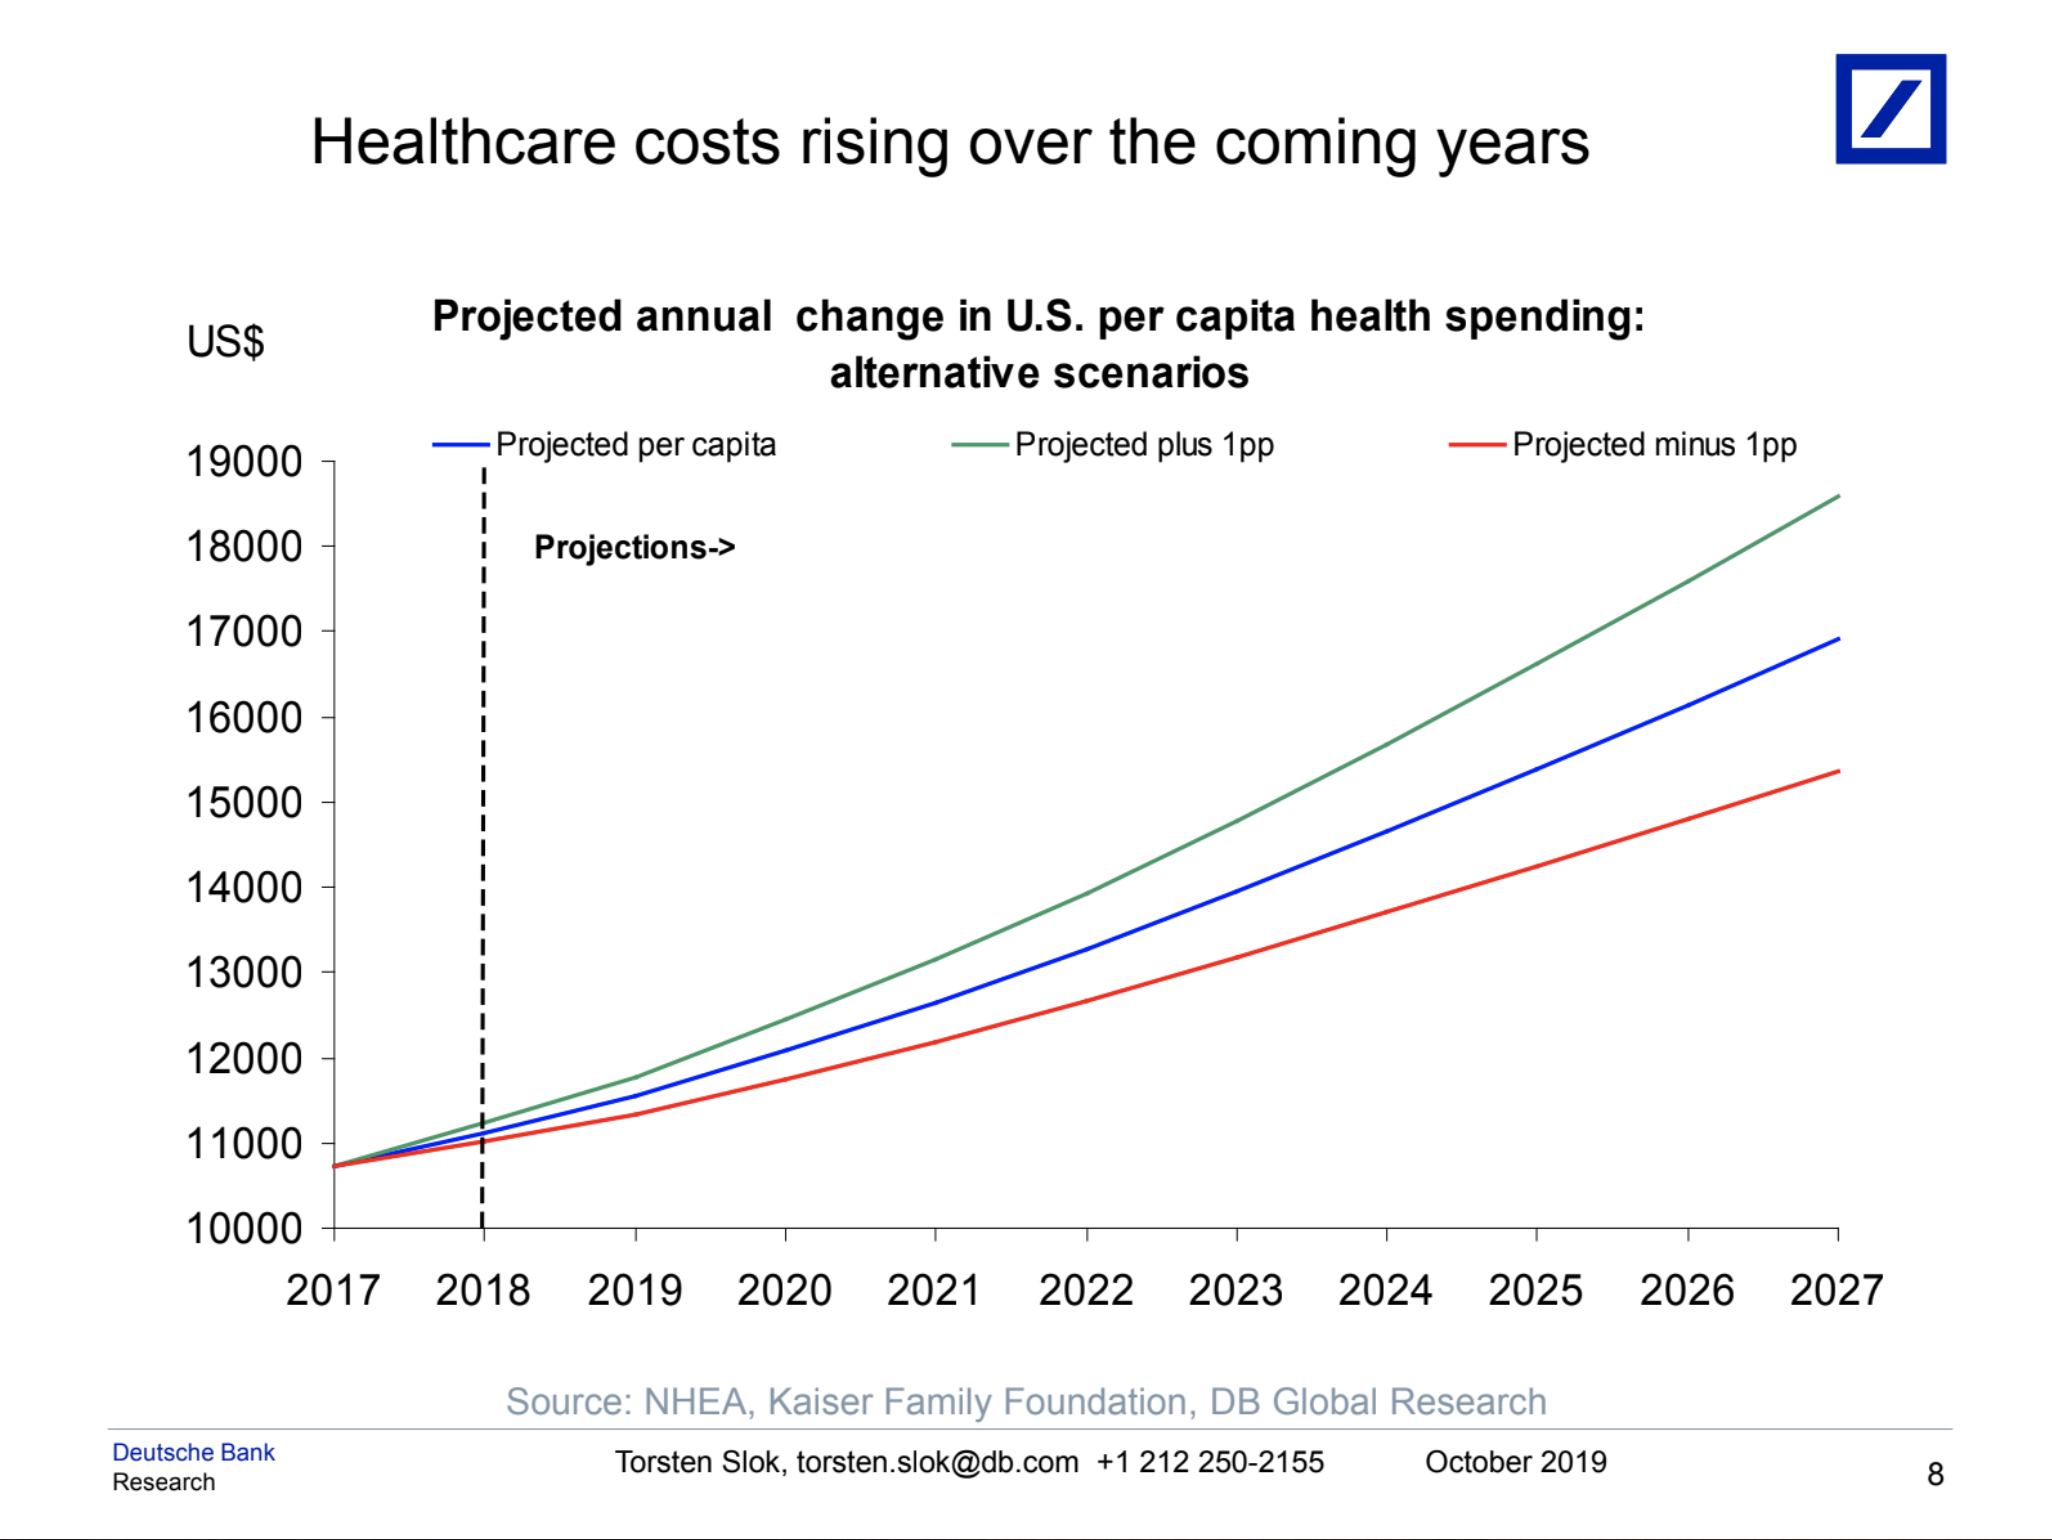 Health care costs are projected to continue increasing. (Chart: Deutsche Bank Research)